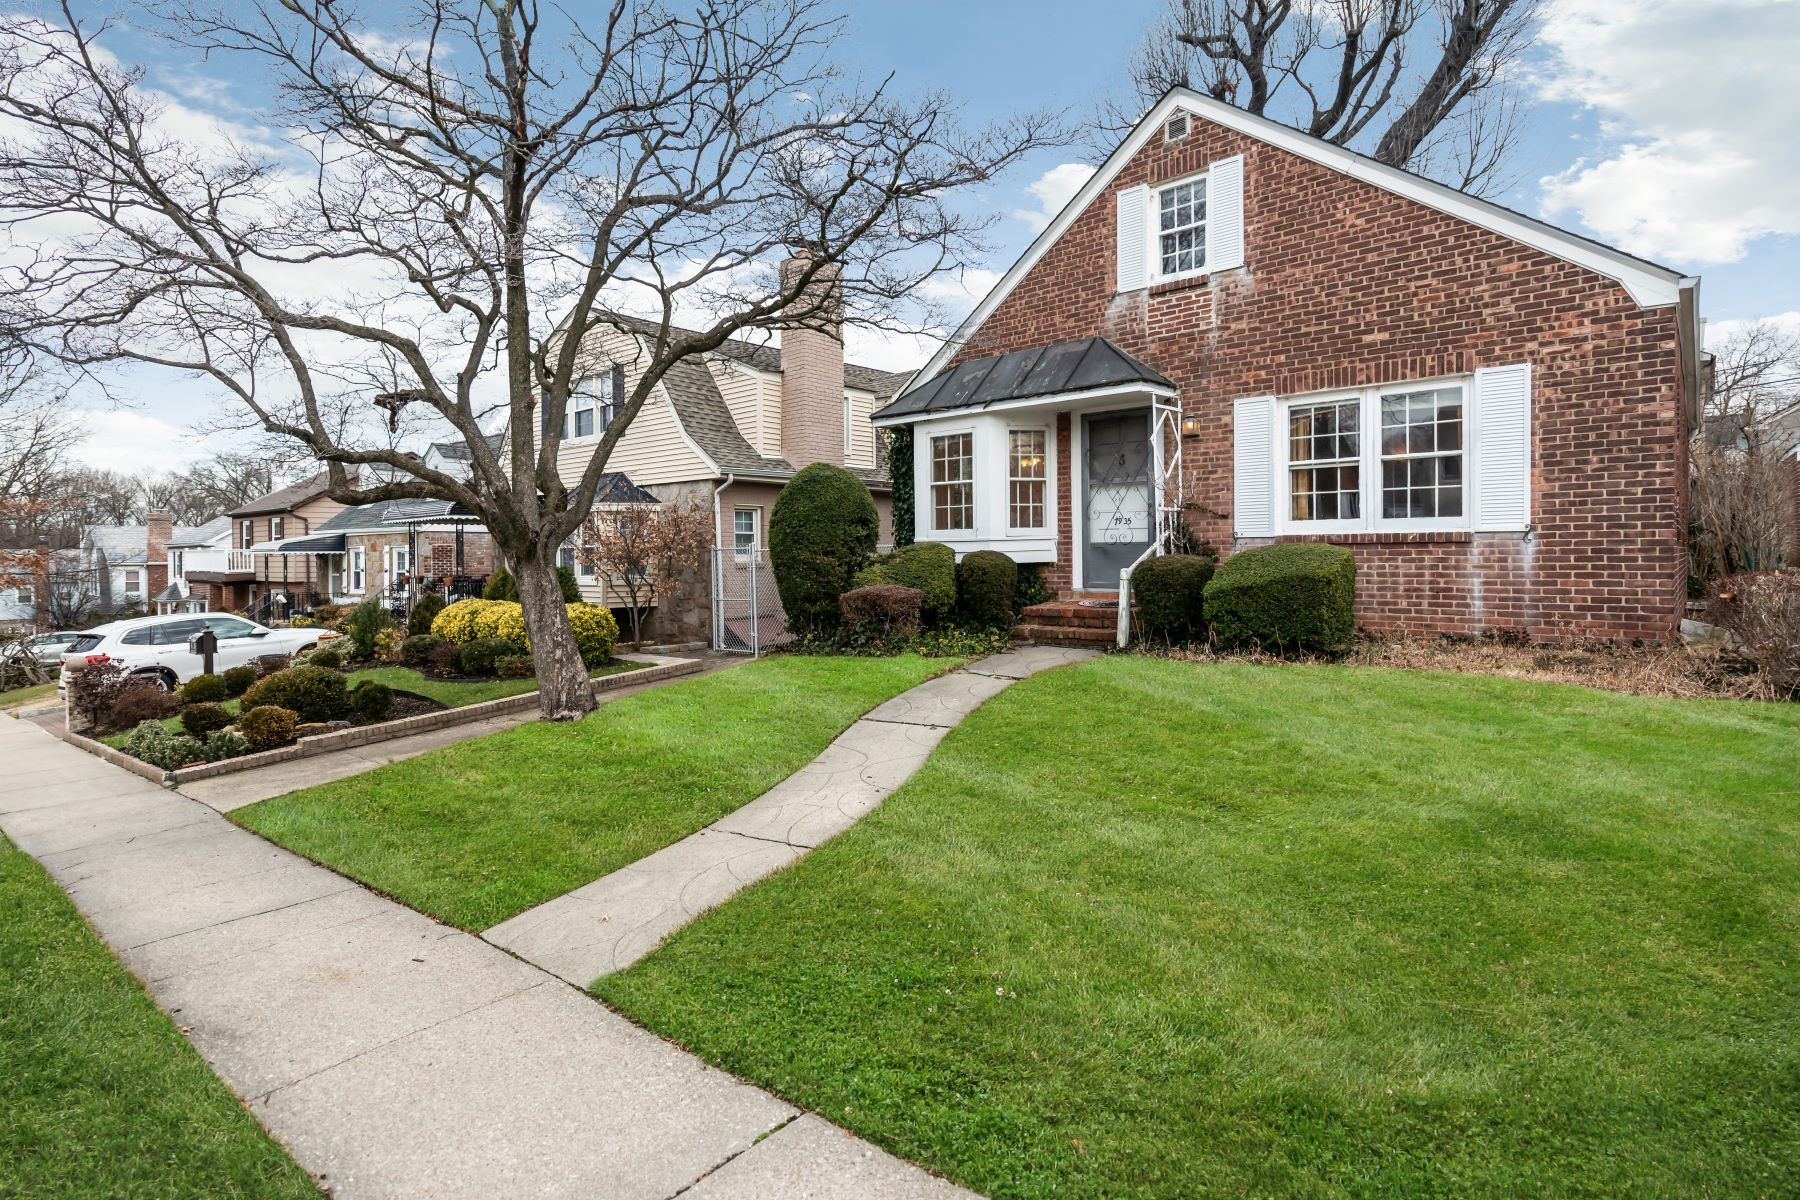 Single Family Homes for Sale at Bayside 79-35 209th Street Bayside, New York 11364 United States